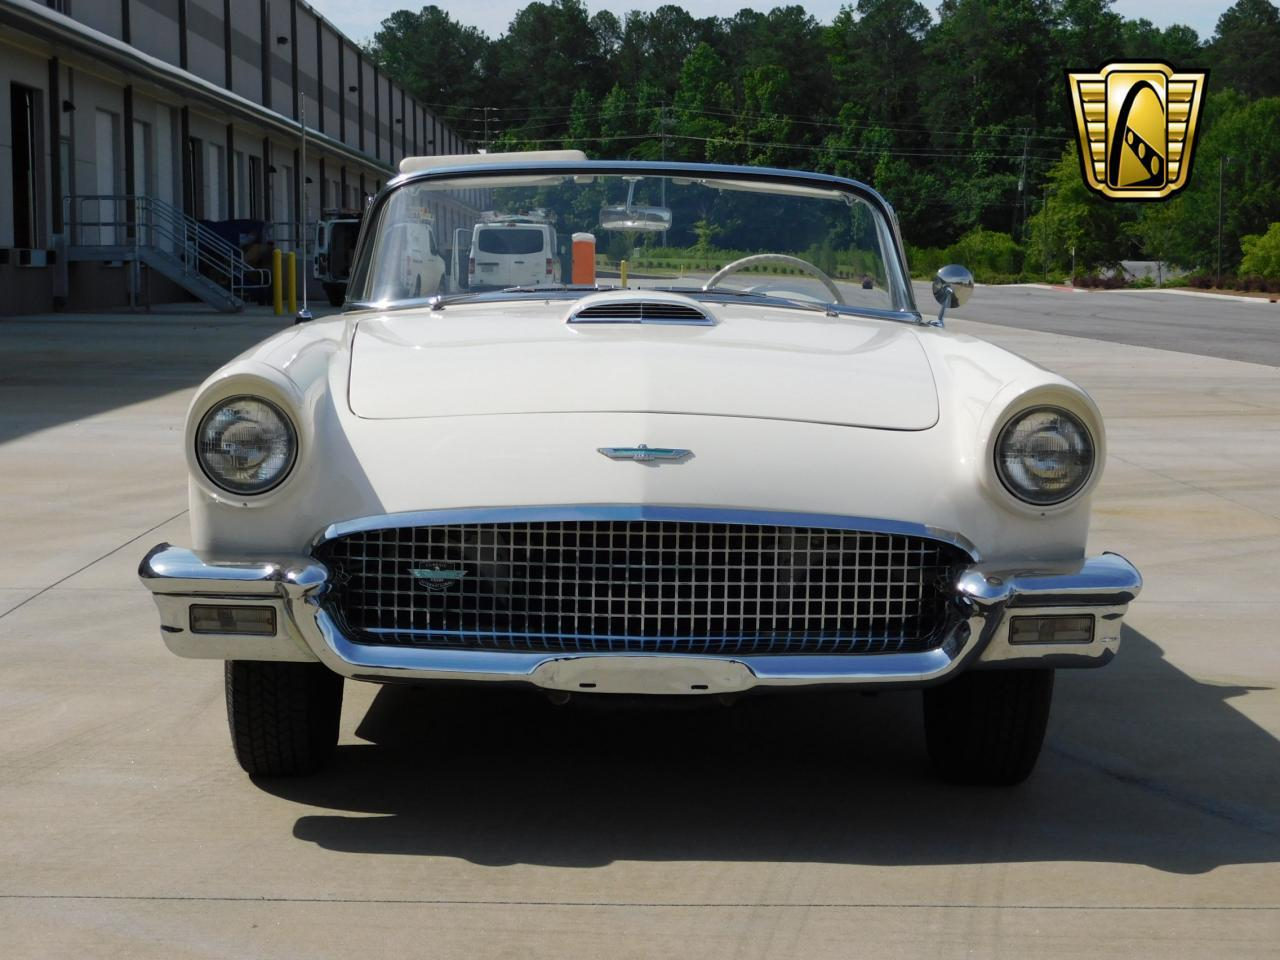 Large Picture of '57 Ford Thunderbird located in Georgia - $51,000.00 - L77Y